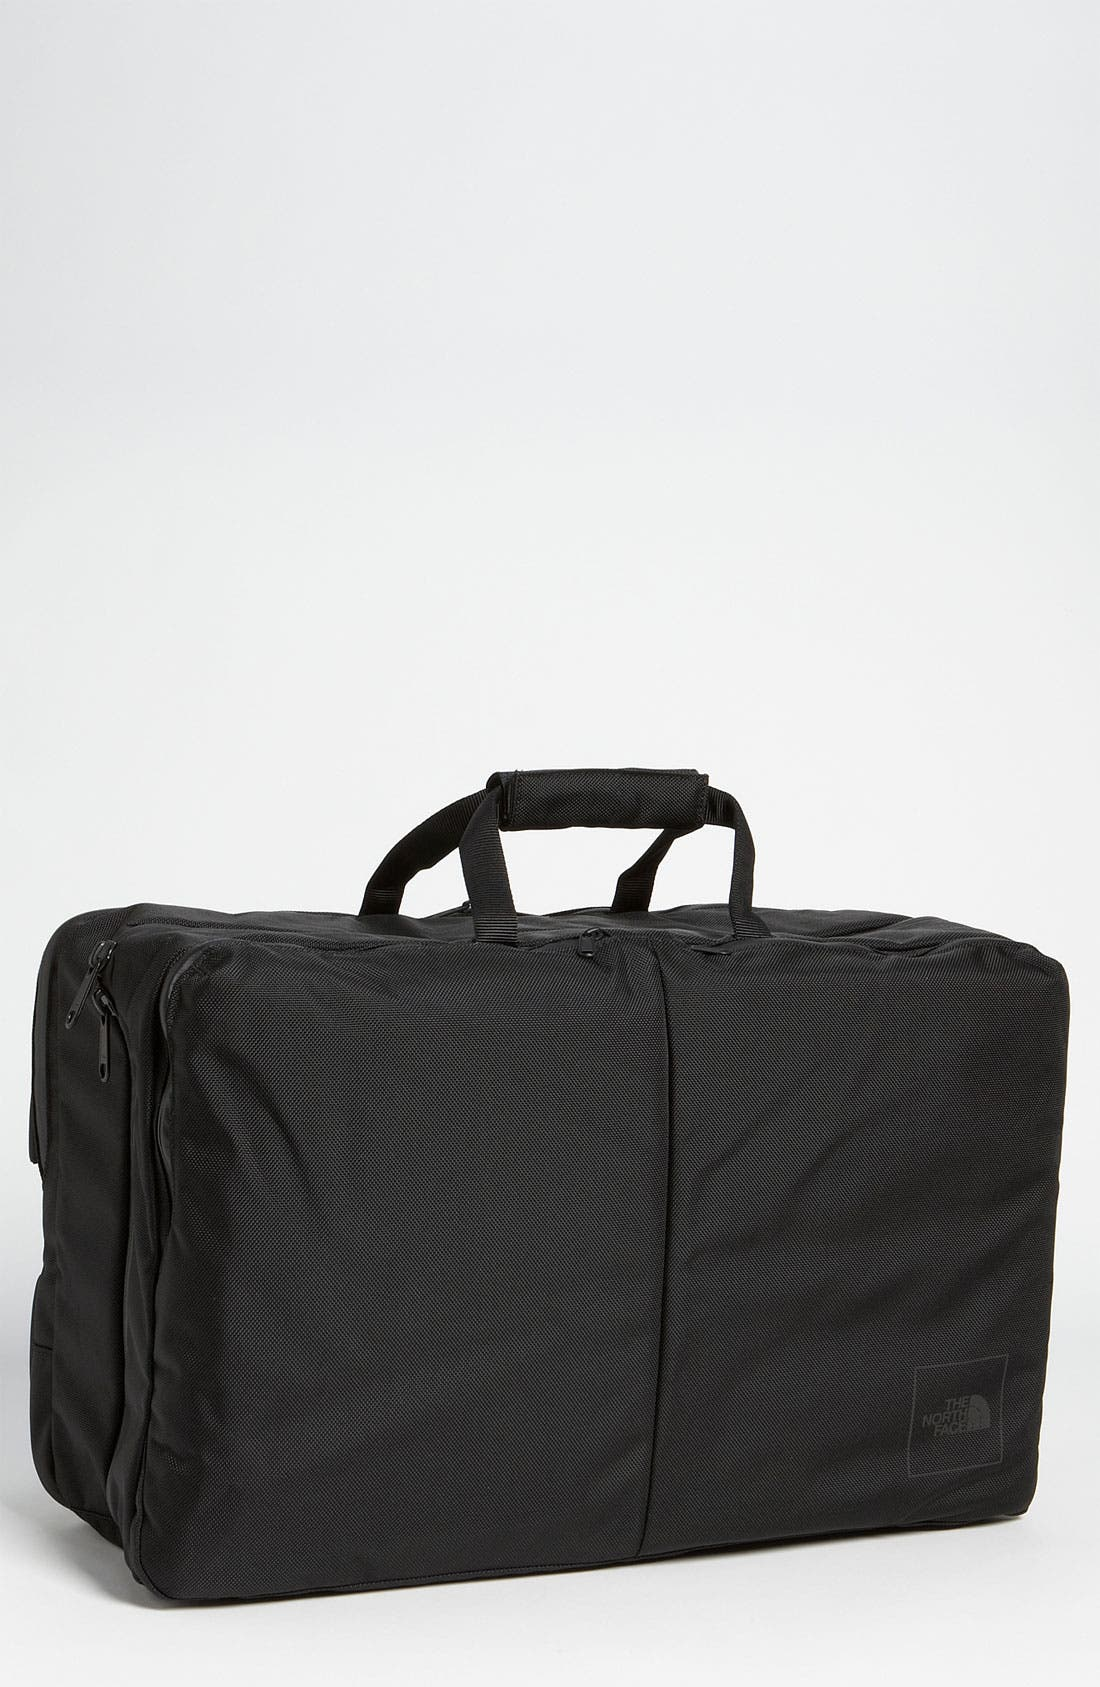 Alternate Image 1 Selected - The North Face 'Shuttle' Duffel Bag